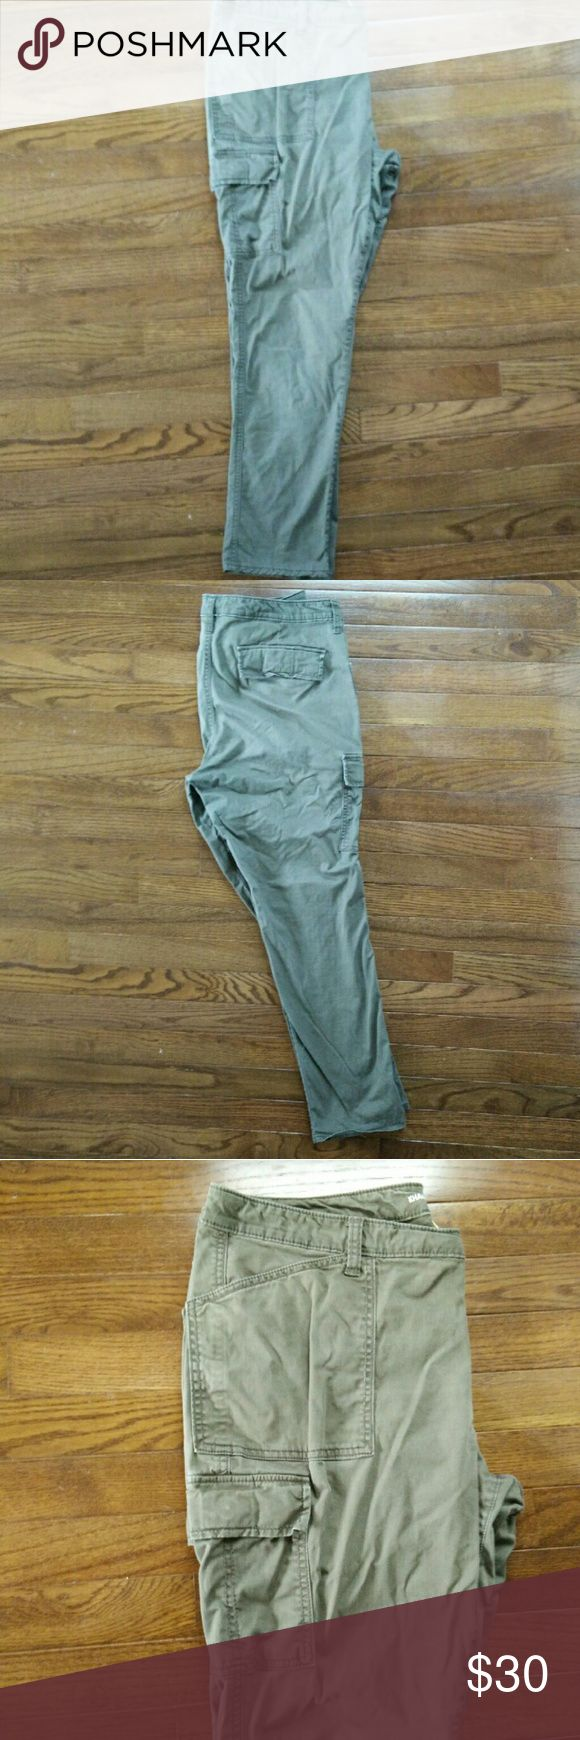 """Gap skinny boyfriend cargo pants These are a soft twill and feature 6 pockets (front slant, cargo, and rear flap pockets). They are super comfortable for everyday wear and can be worn rolled up or unrolled. 29"""" inseam GAP Jeans Boyfriend"""